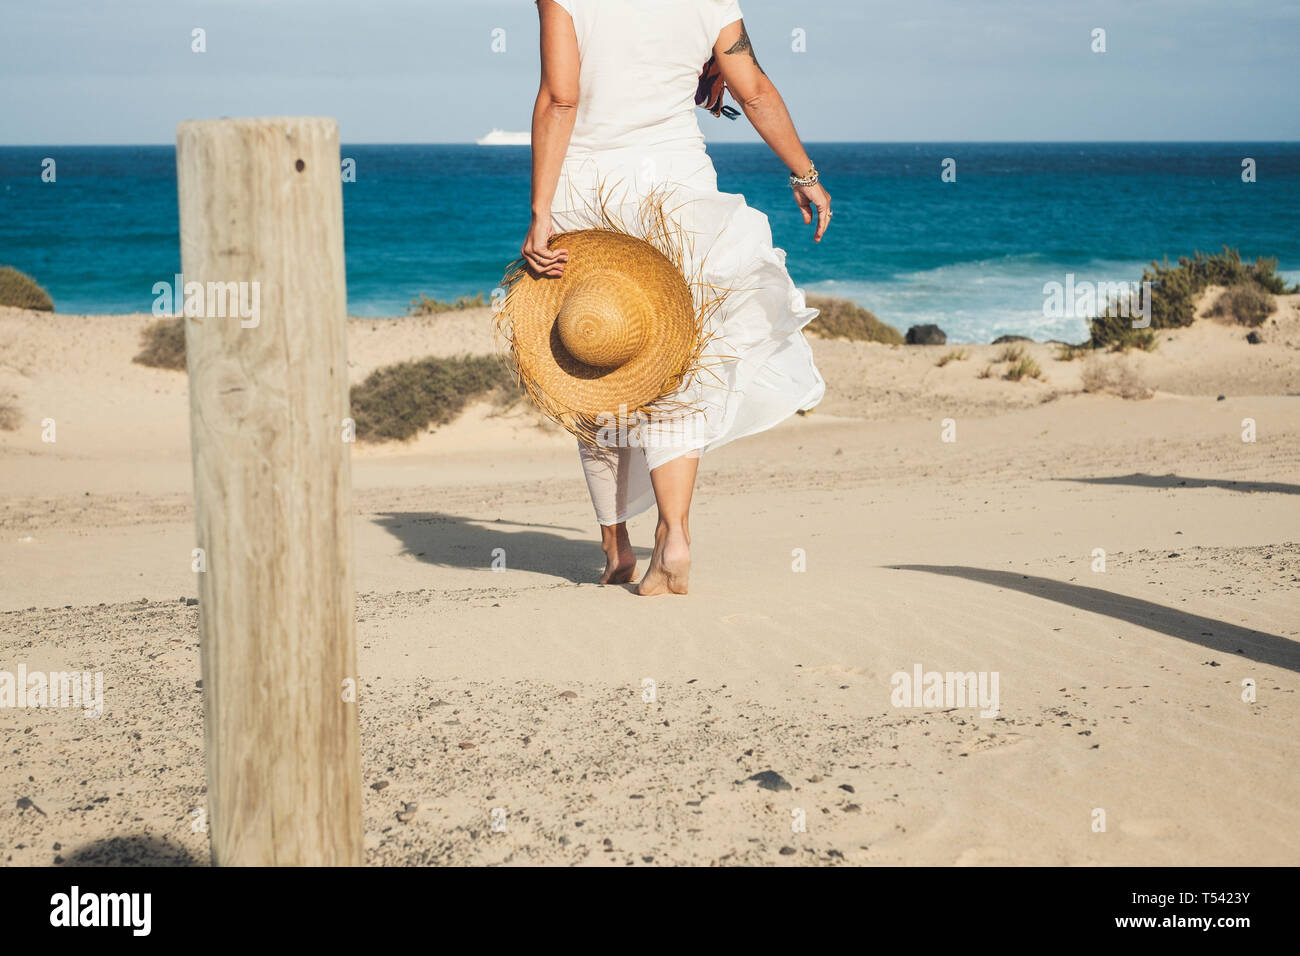 Elegant fashion lady in white dress and natural hat walking to the beach barefoot enjoying the summer holiday vacation day in tropical place - blue se Stock Photo